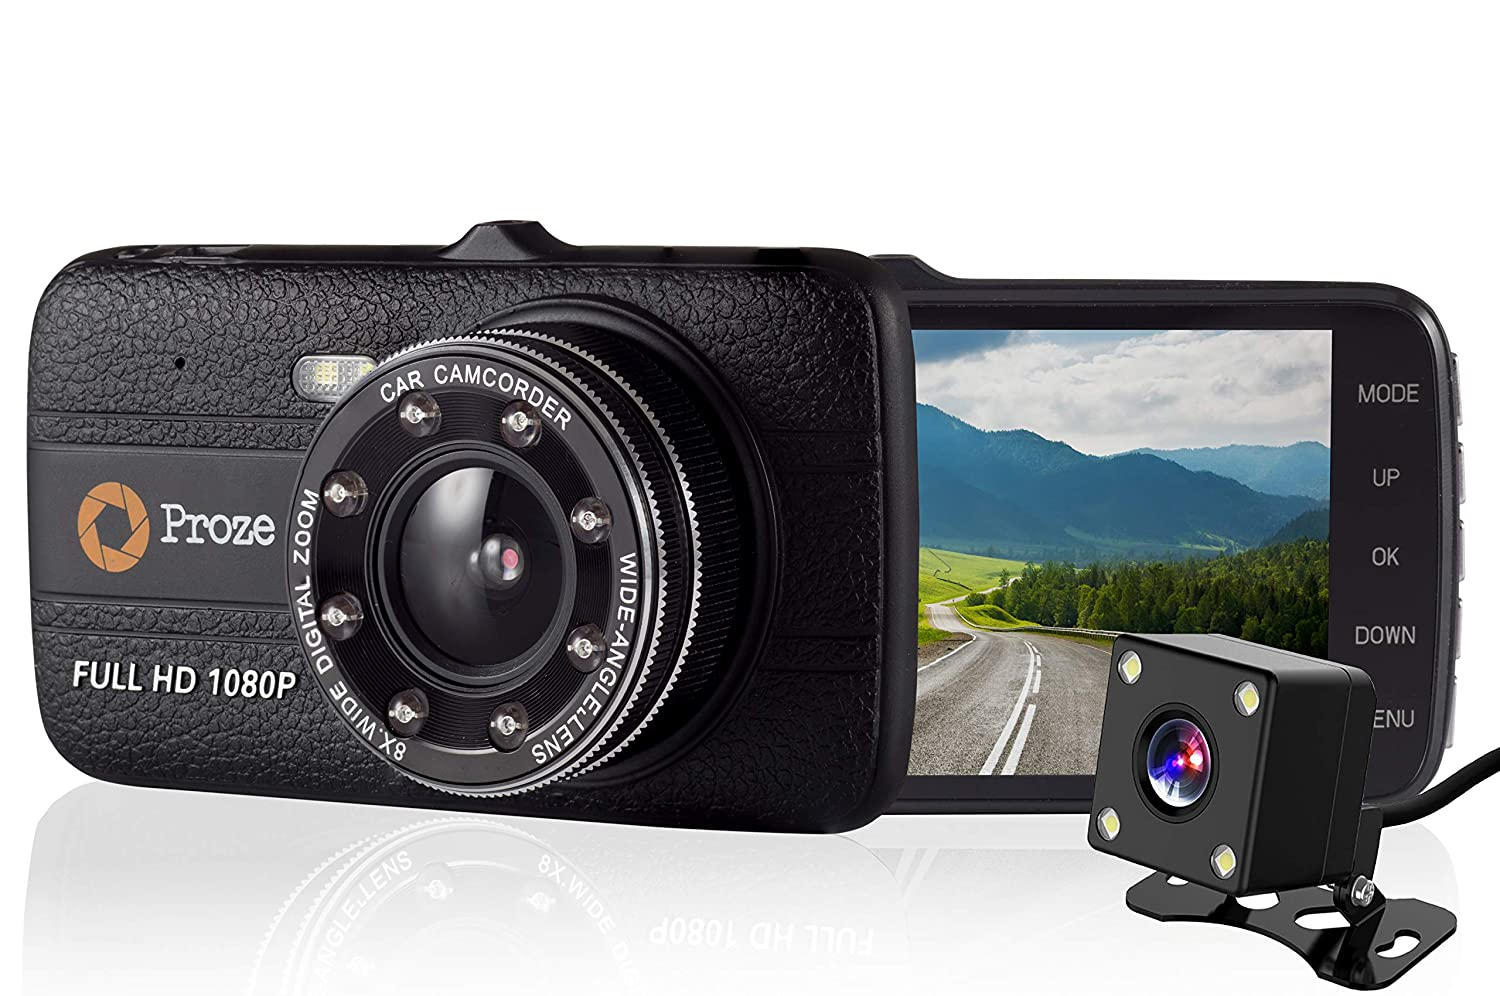 Proze Dash Cam 4.0 Car Camera 170° Wide Angle Dual Dashboard Cam with Front and Rear Camera 4' HD 1080P Full HD DVR G Sensor Enhanced Night Vision IR Loop Recording Motion Detection Parking Monitor P-DC-4.0